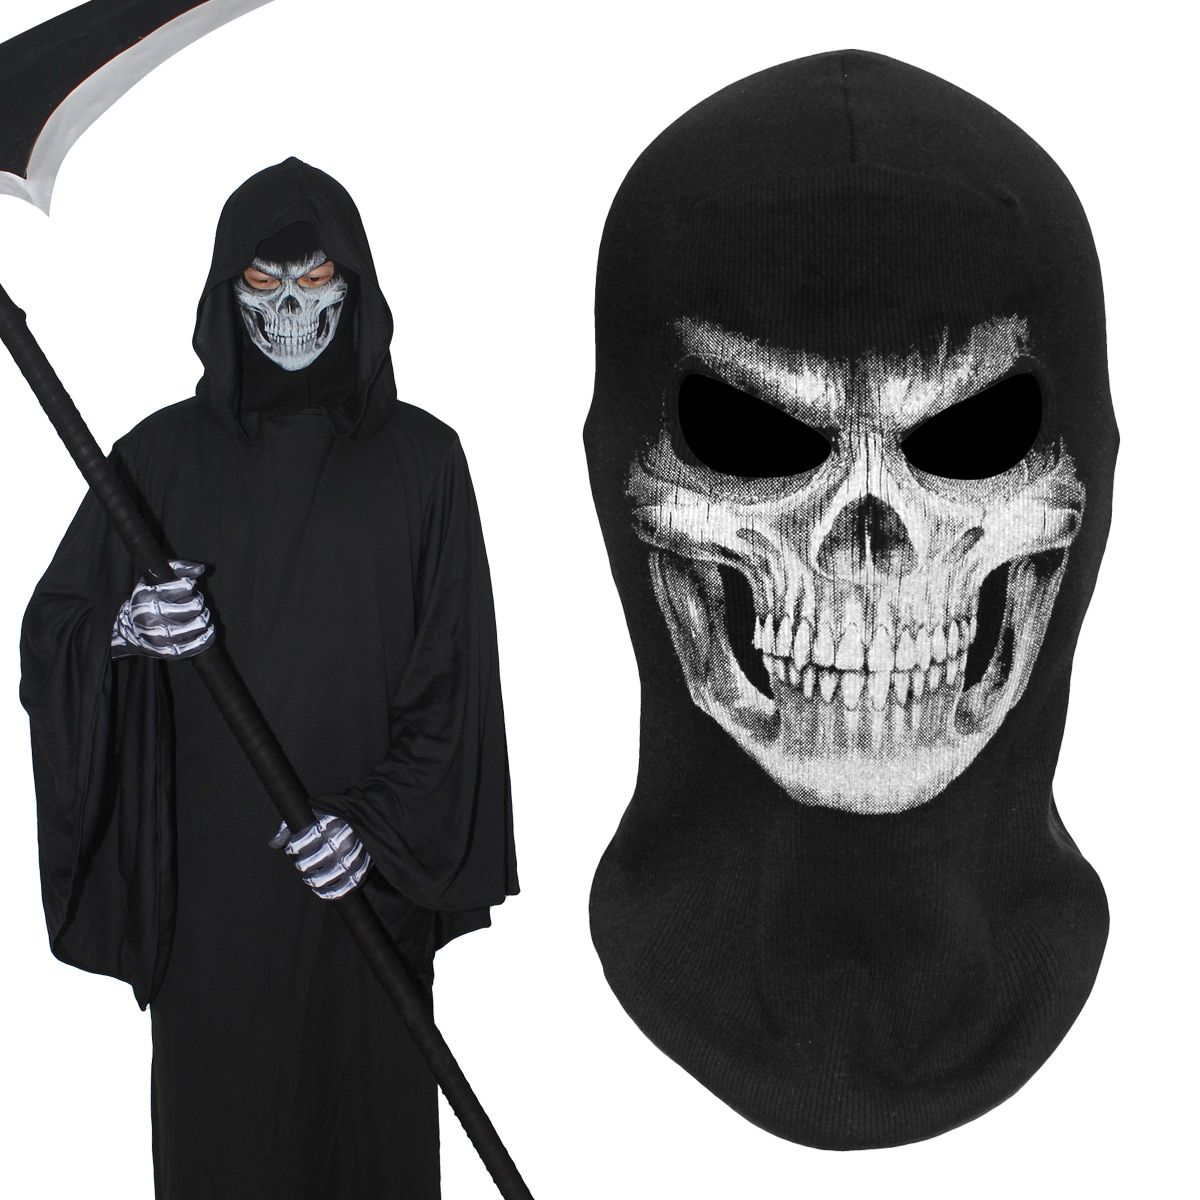 Military Army Death Grim Reaper Ghost Skull Skeleton Hats Tactical Balaclava Halloween Snowboard Cosplay Costume Full Face Mask